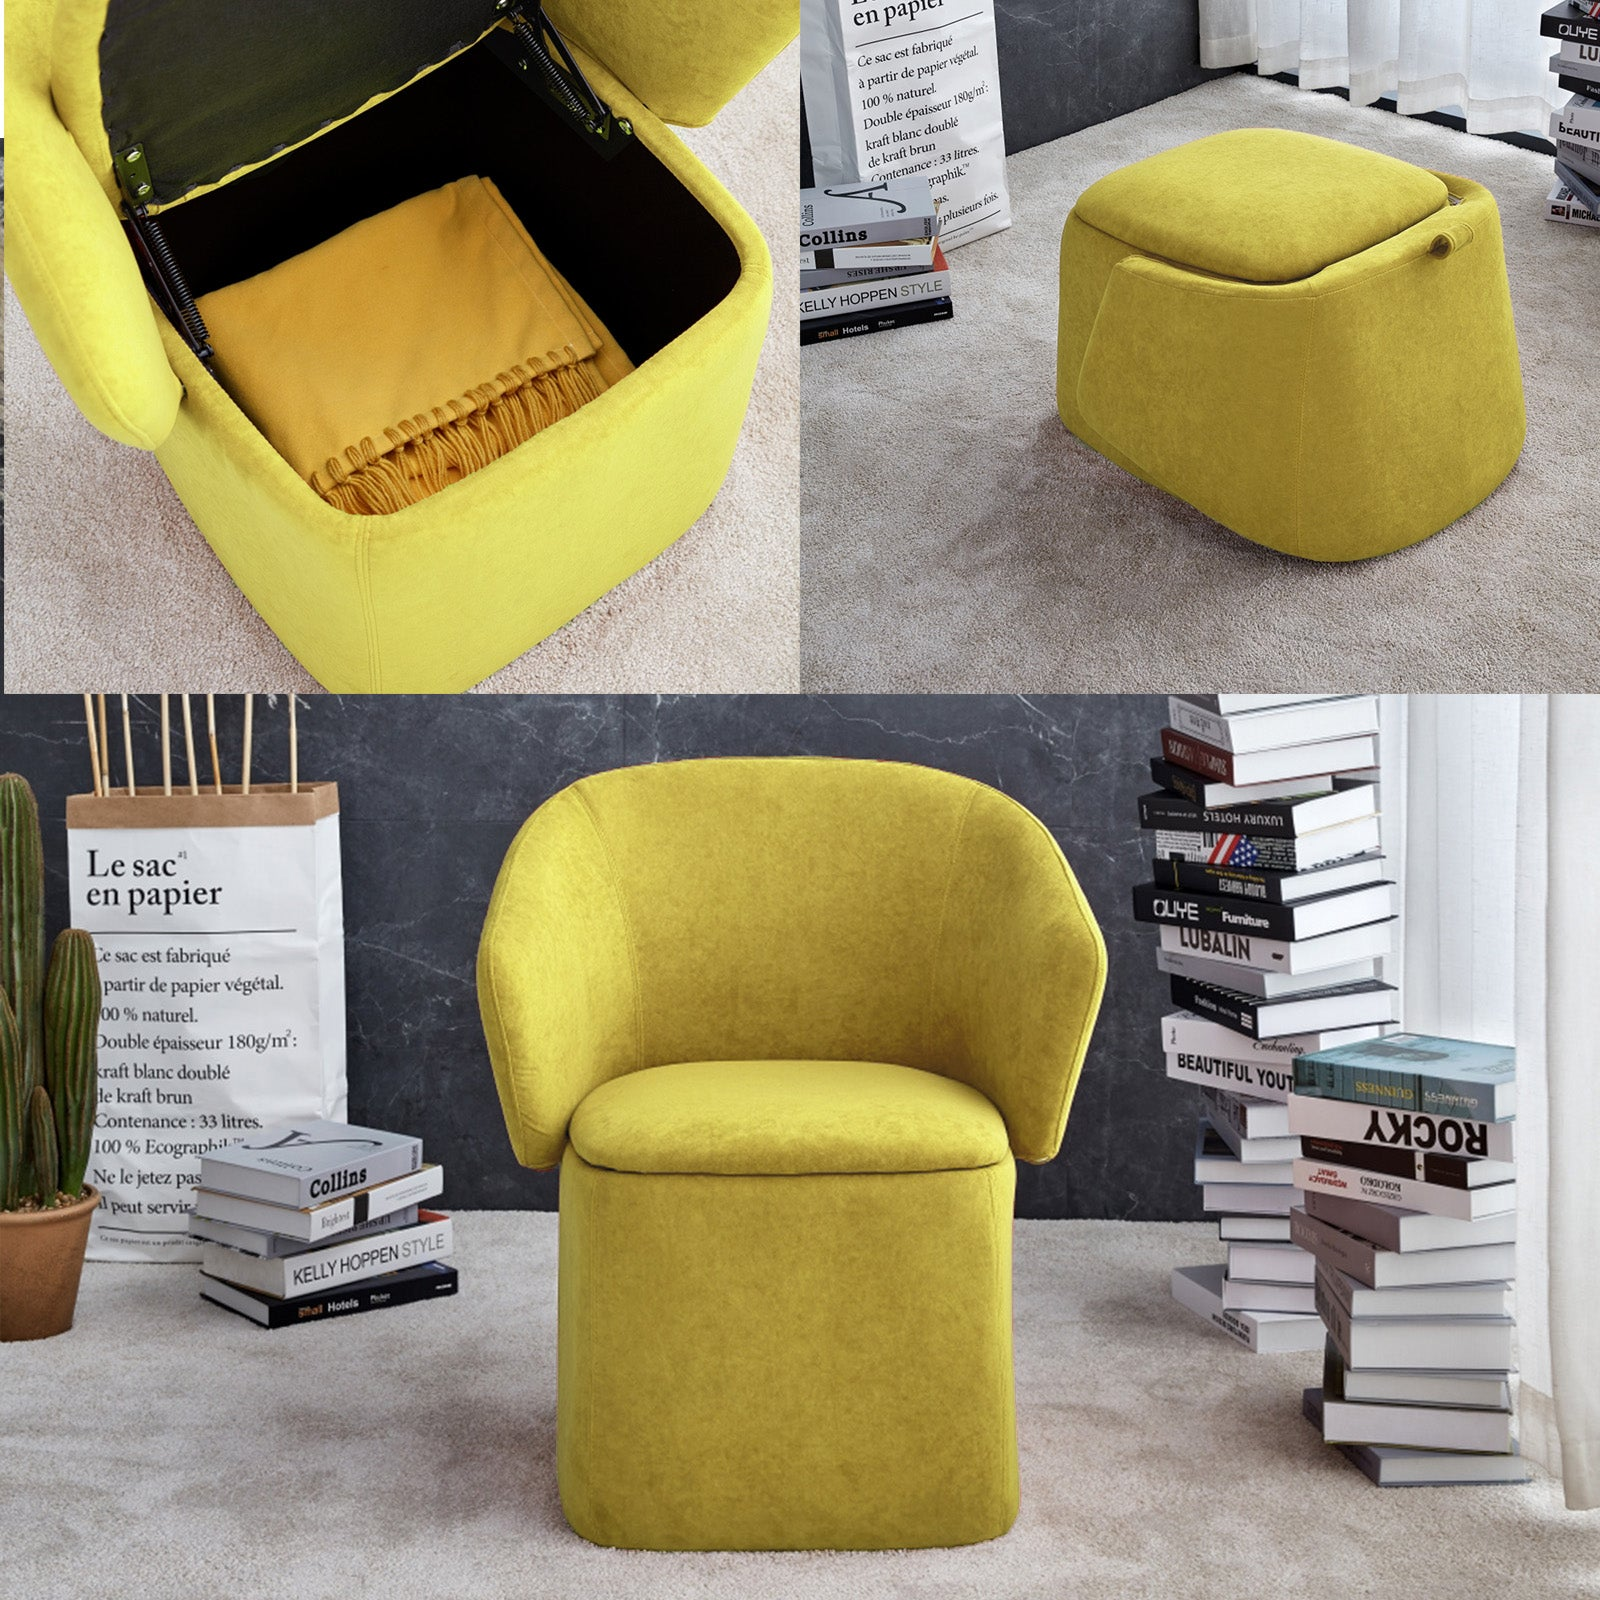 Flexa Chair/stool/storage  B2280-Yellow -  كرسي / مقعد / تخزين فليكسا - Shop Online Furniture and Home Decor Store in Dubai, UAE at ebarza